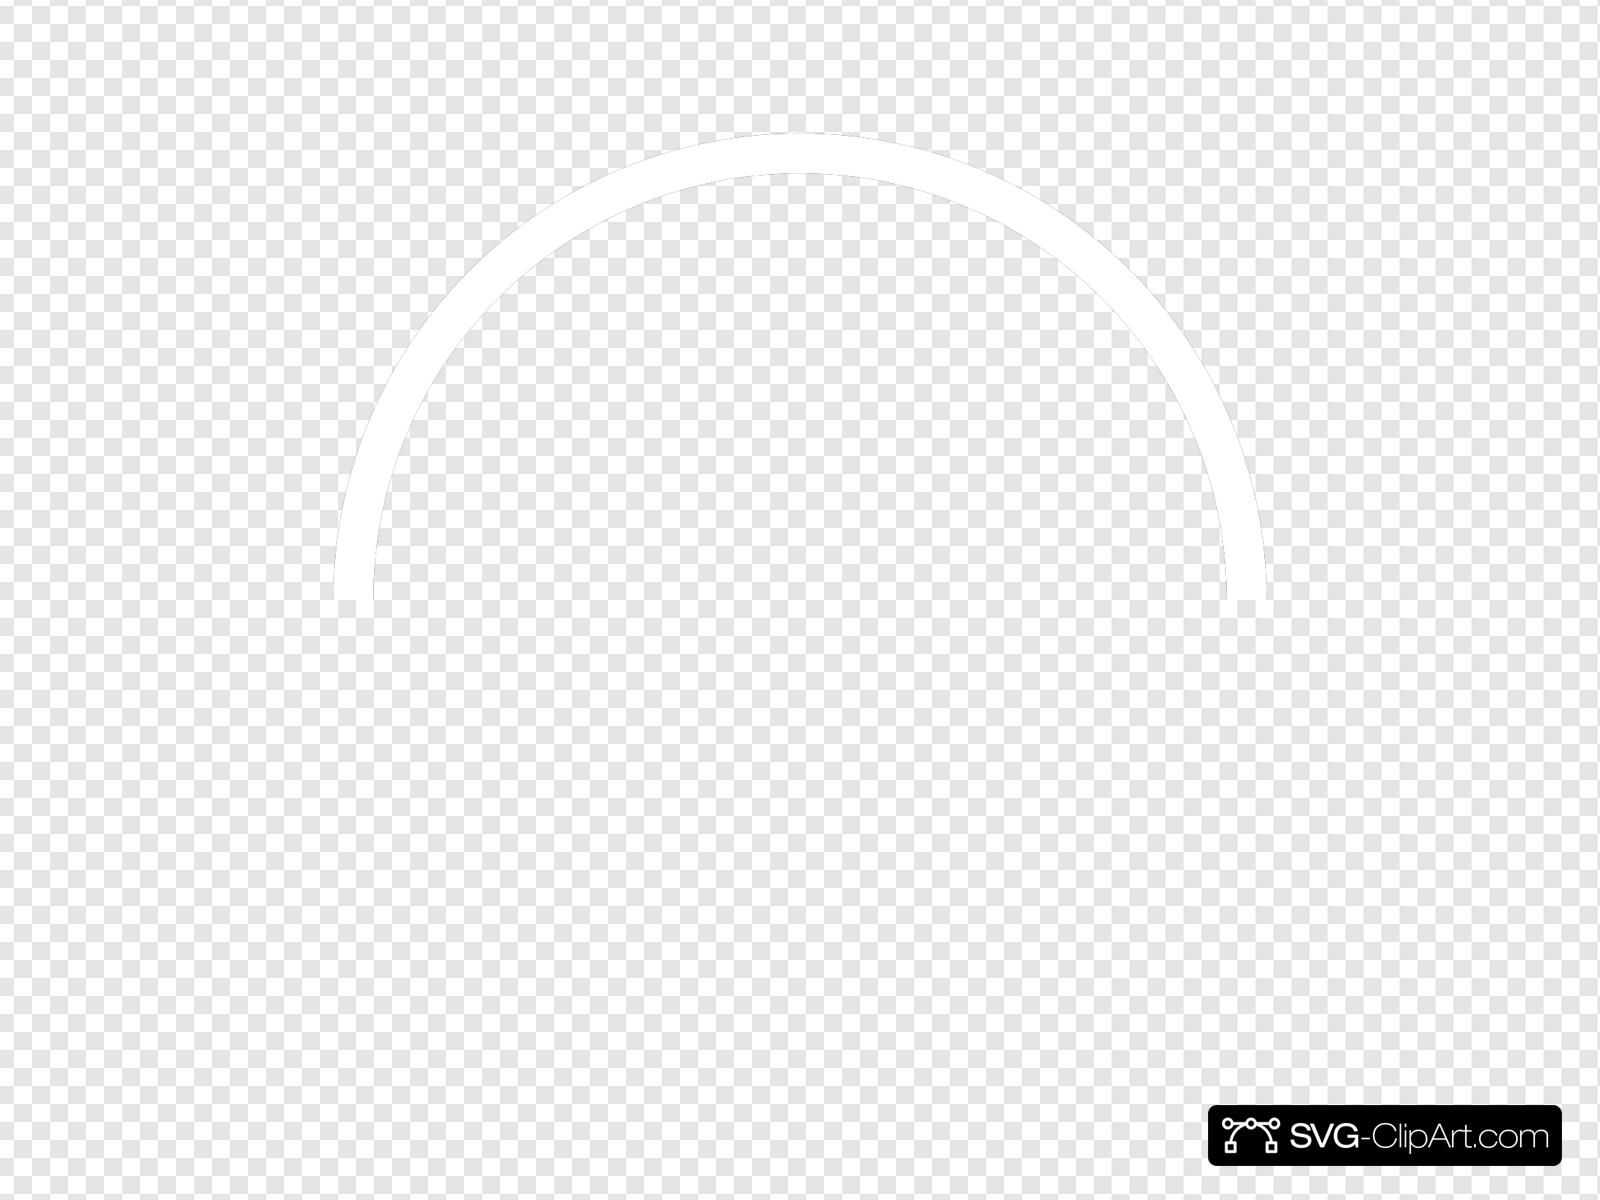 Half Circle Clipart Images In 2021 Circle Clipart Clip Art Circle Infographic